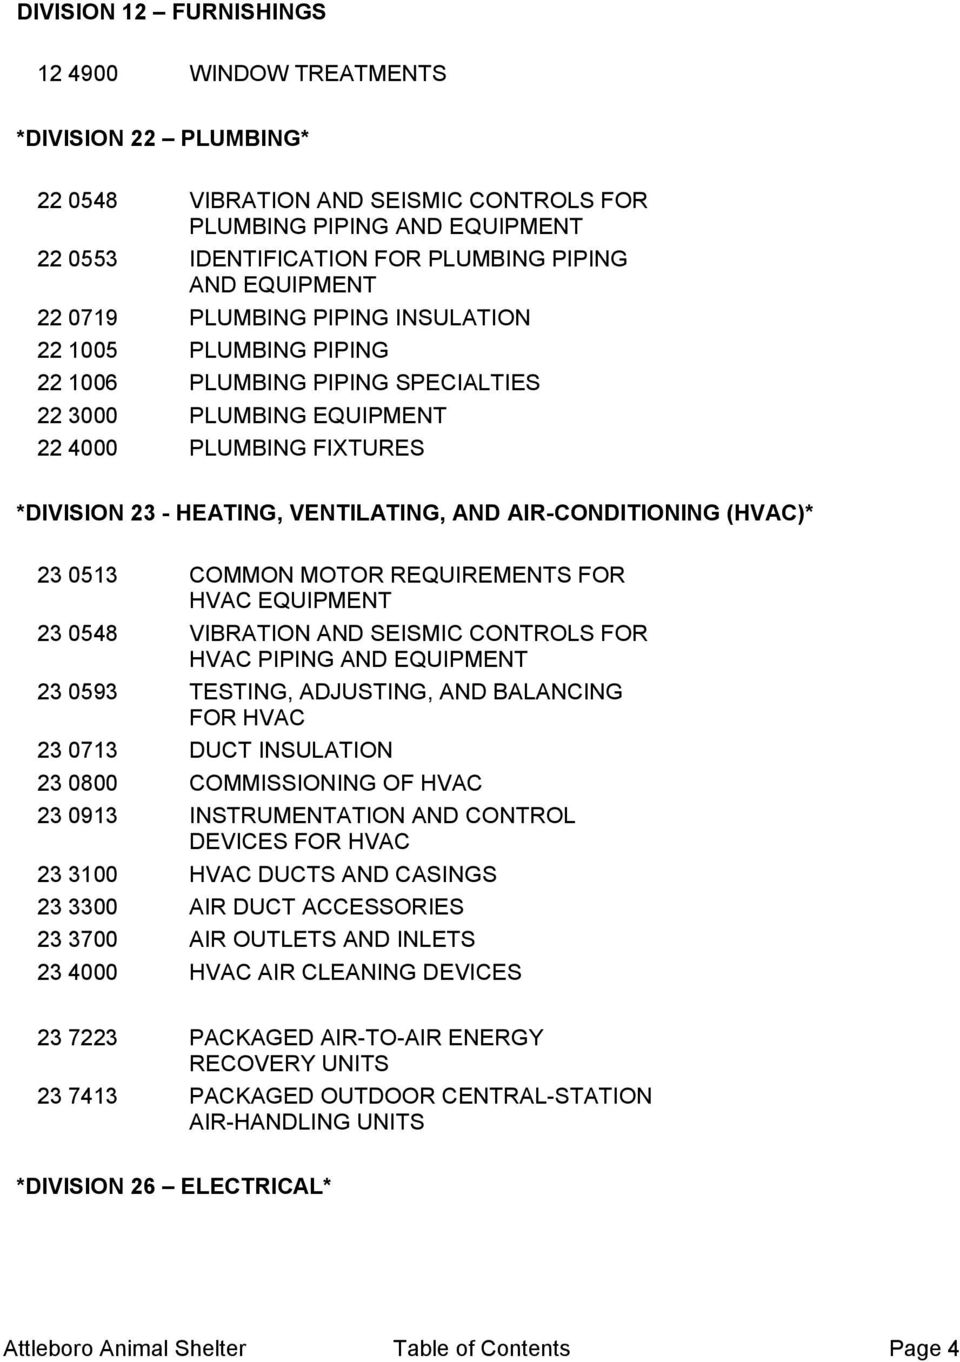 AIR-CONDITIONING (HVAC)* 23 0513 COMMON MOTOR REQUIREMENTS FOR HVAC EQUIPMENT 23 0548 VIBRATION AND SEISMIC CONTROLS FOR HVAC PIPING AND EQUIPMENT 23 0593 TESTING, ADJUSTING, AND BALANCING FOR HVAC